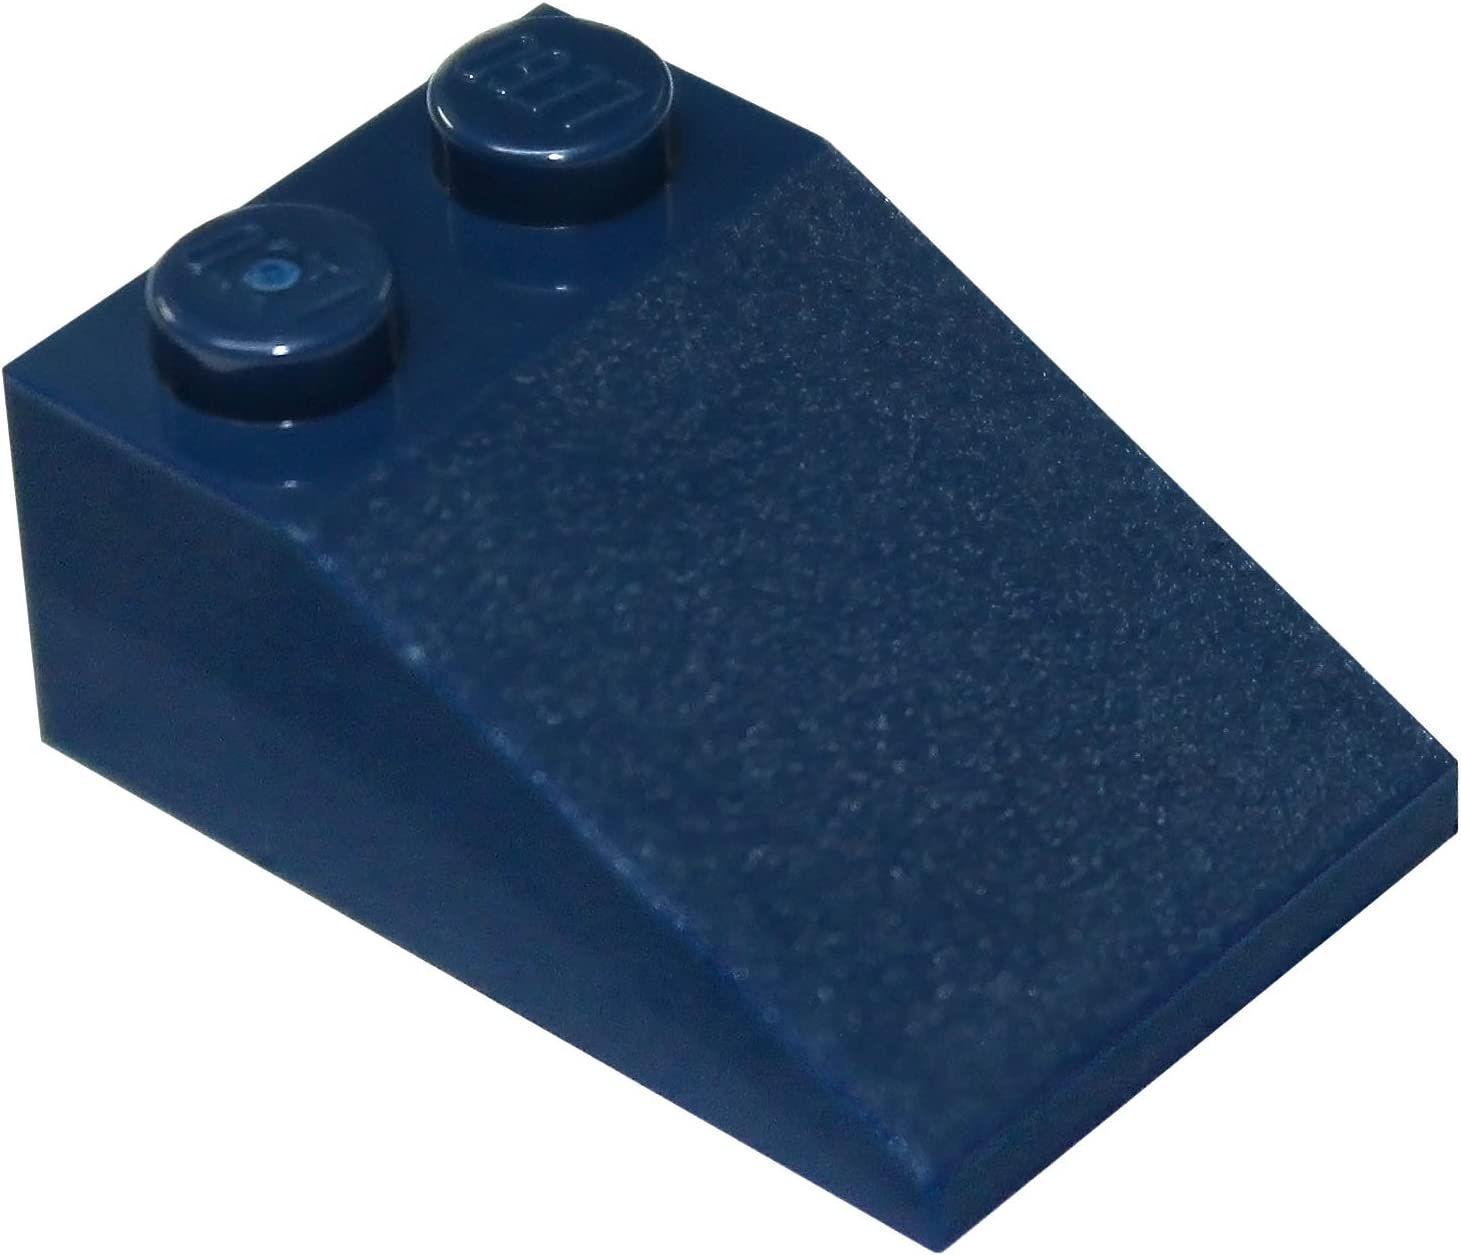 LEGO Parts and Pieces: Dark Blue (Earth Blue) 2x3 33 Slope x50